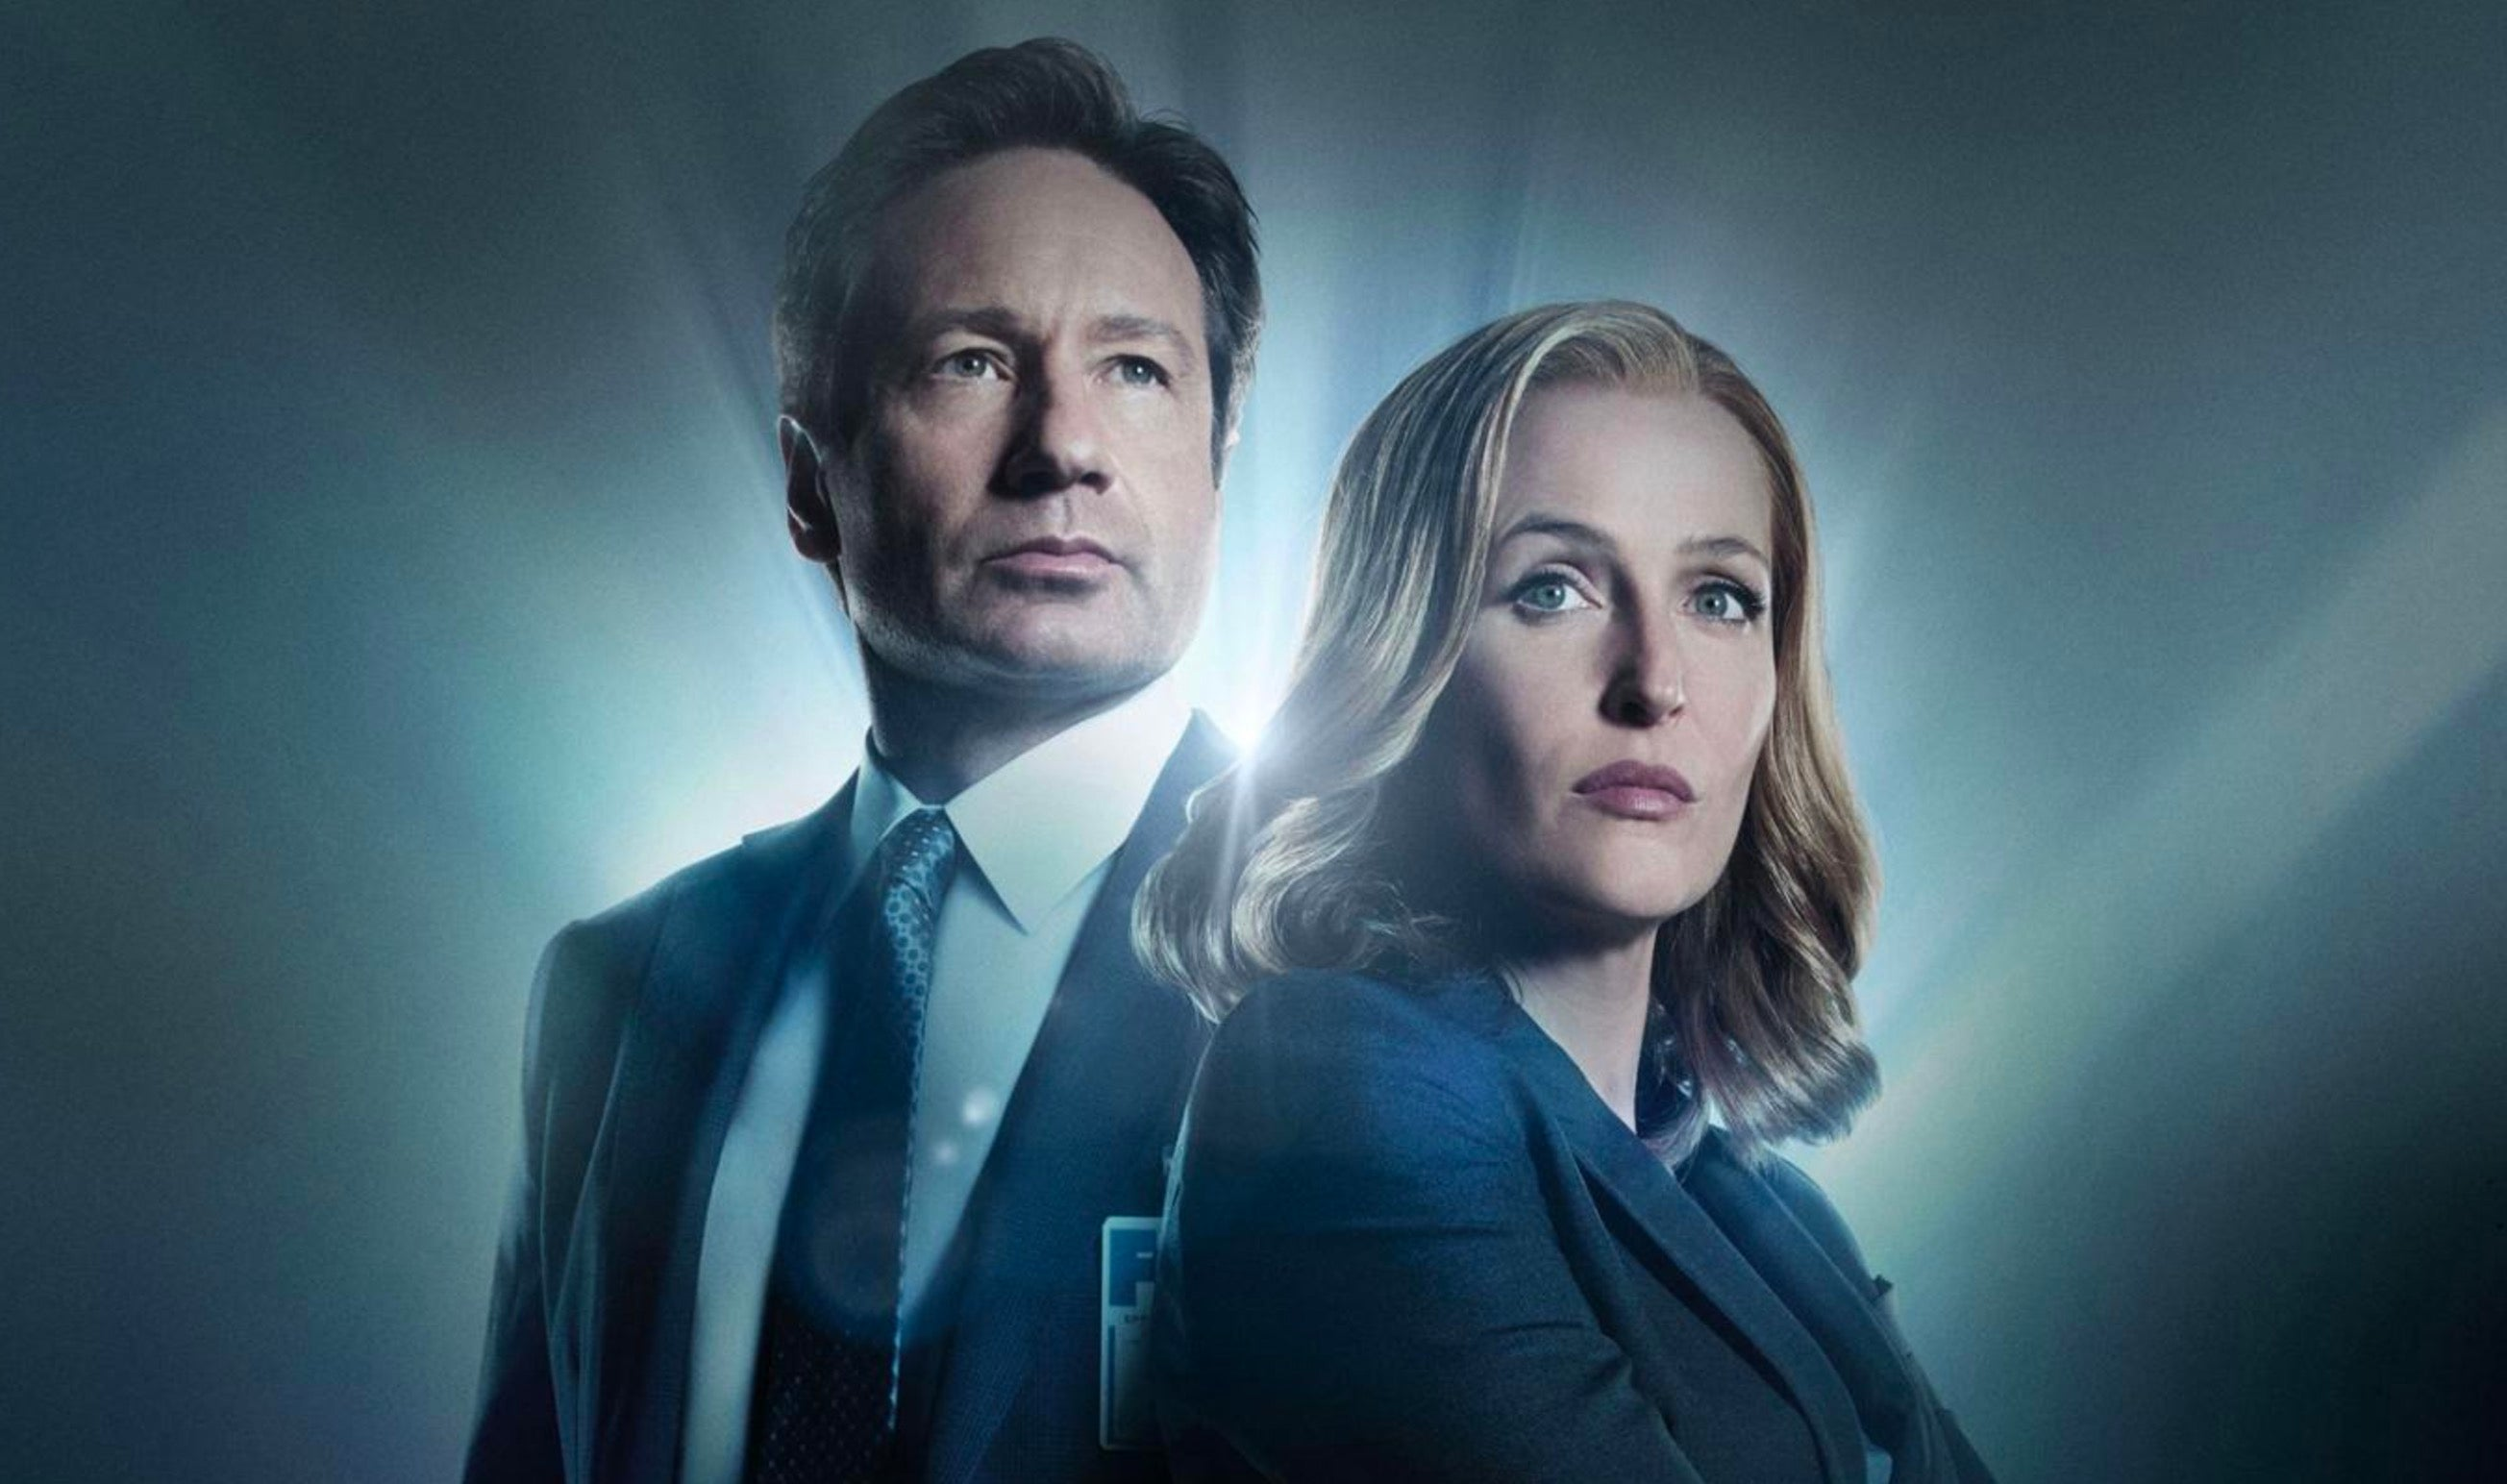 There's A New X-Files Audio Book Feat. Scully And Mulder